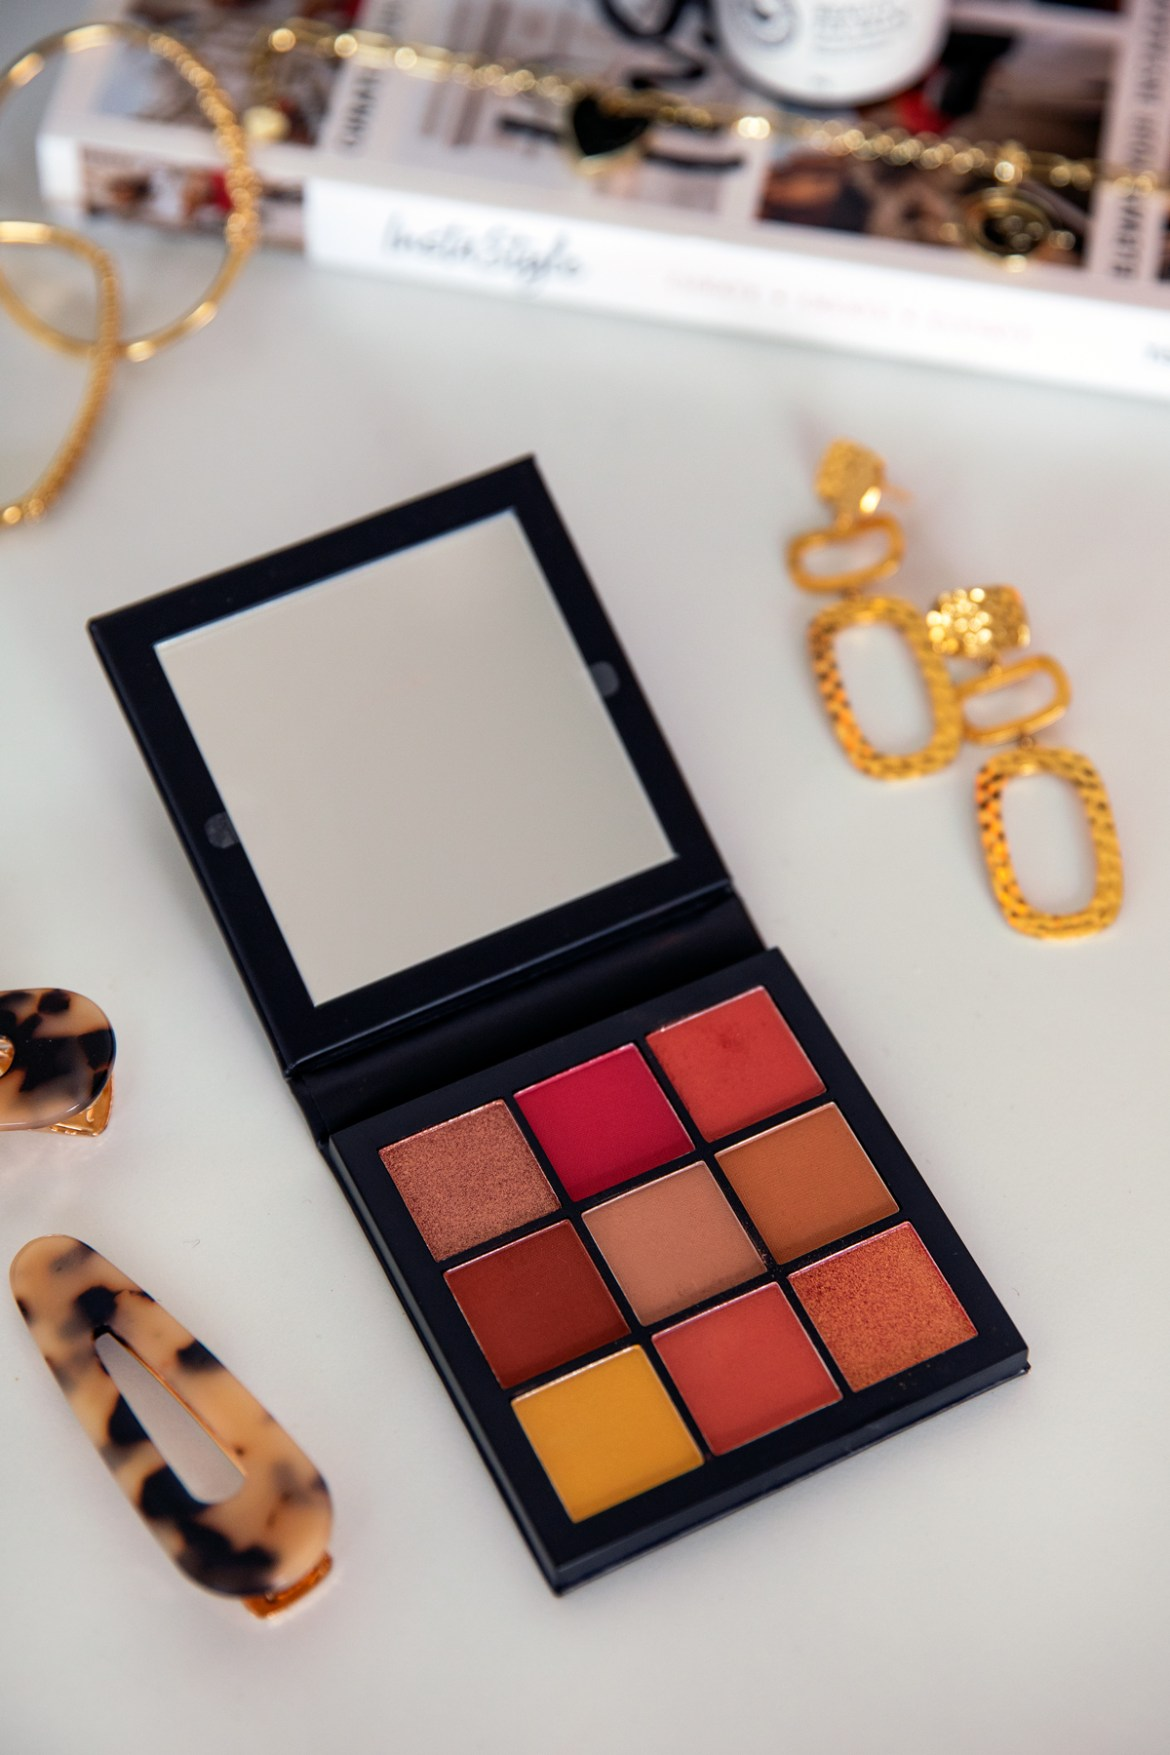 Huda Beauty eye shadow palette product review by Inspiring Wit from Sephora haul